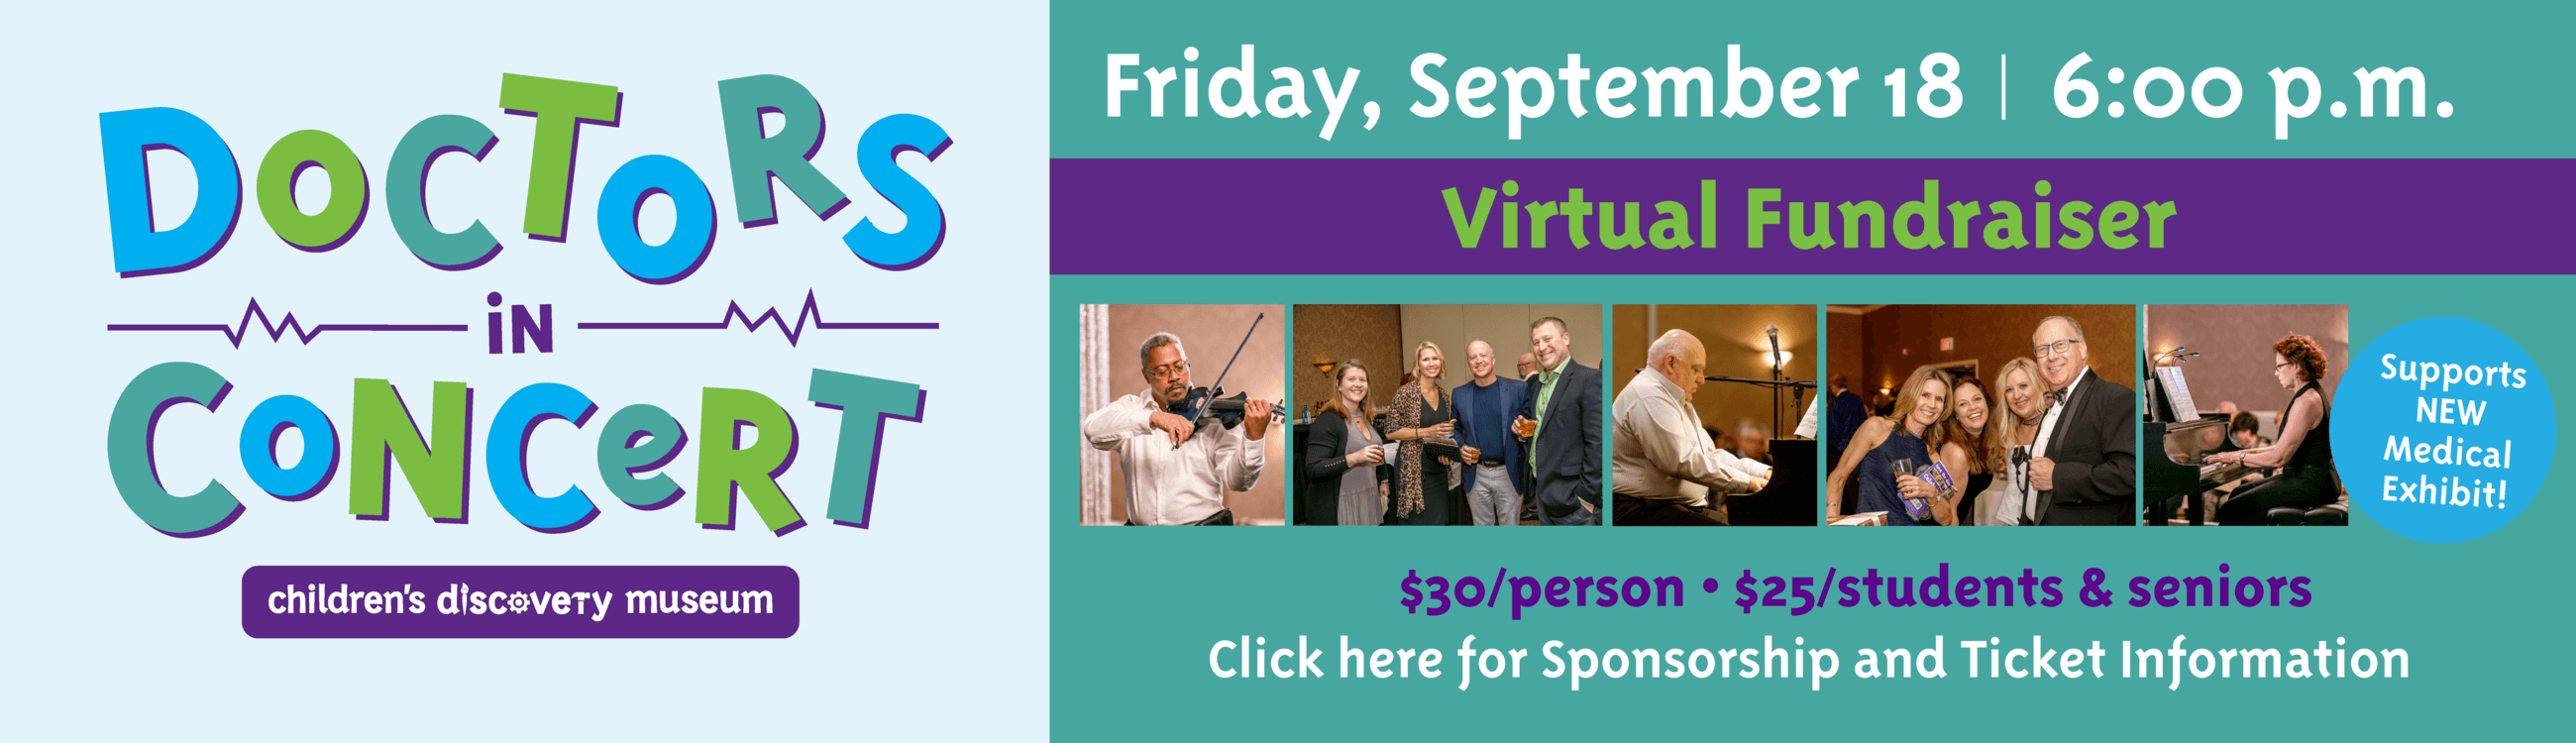 Doctors In Concert Virtual Fundraiser